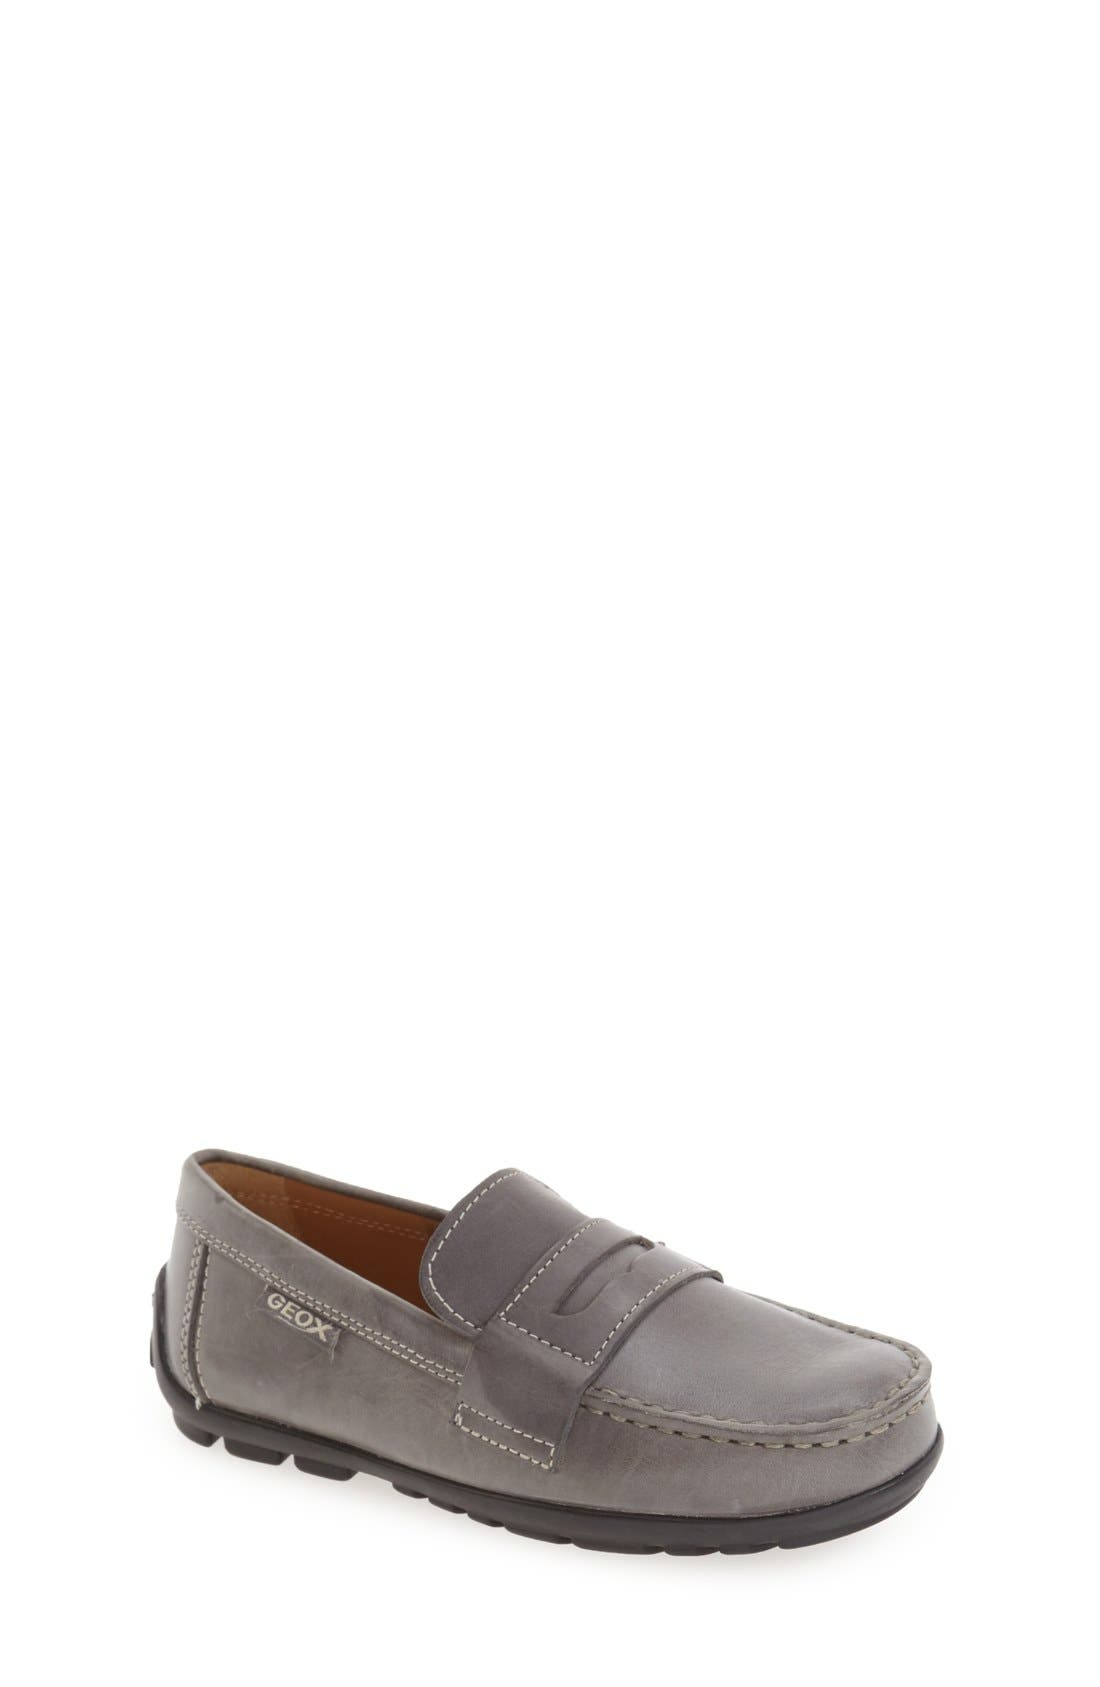 'Fast' Penny Loafer,                             Main thumbnail 1, color,                             Dark Grey